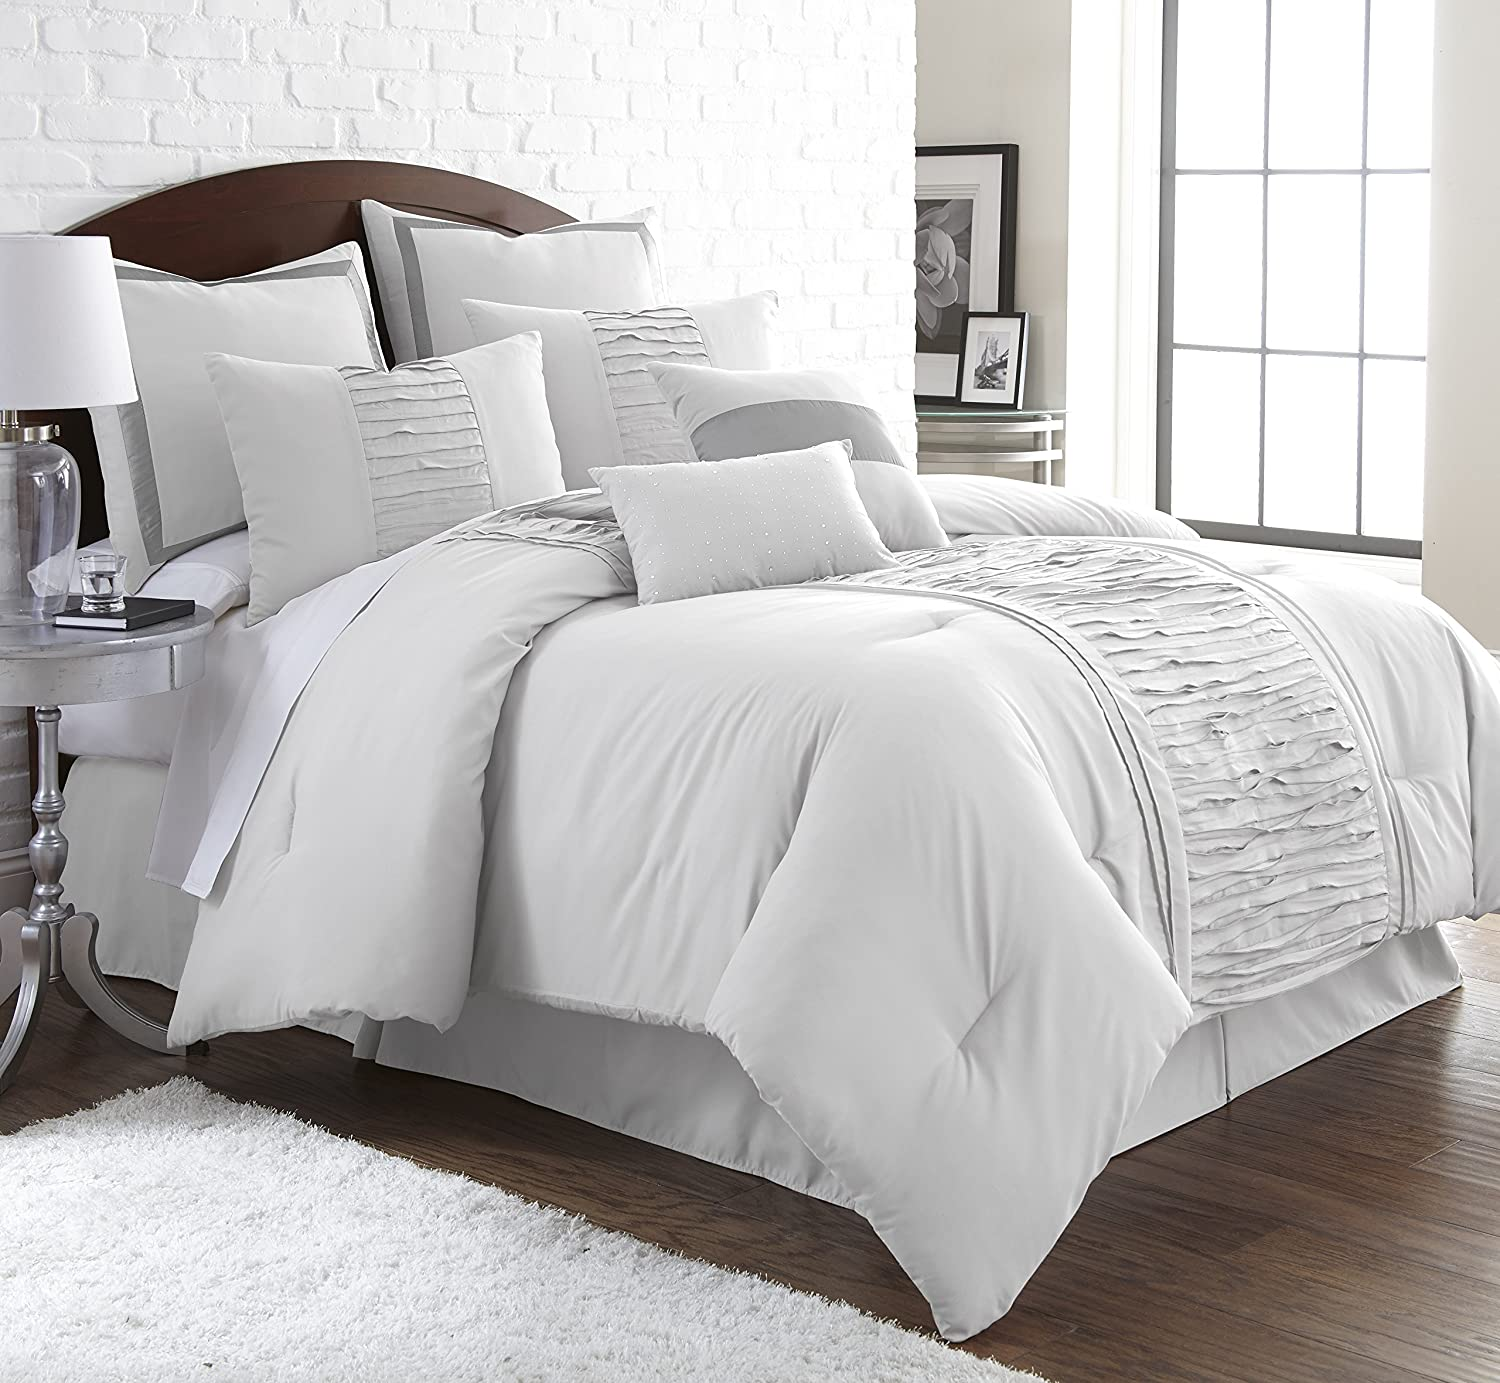 Amazon com  Marilyn Embellished Off white 8 piece Comforter Set King  Off white  Home   Kitchen. Amazon com  Marilyn Embellished Off white 8 piece Comforter Set